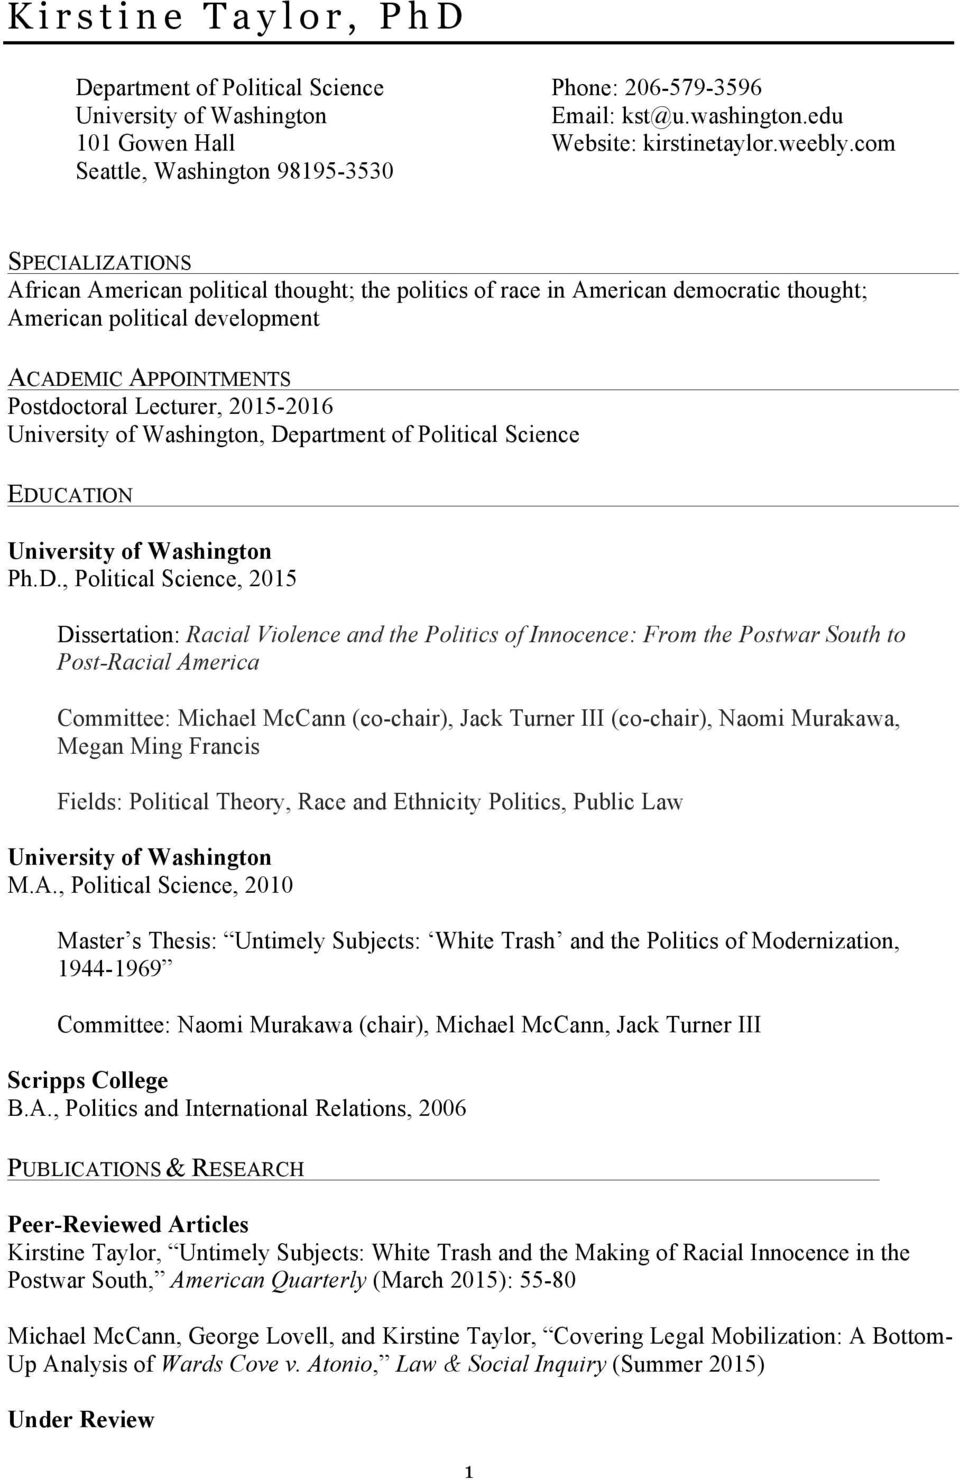 com Seattle, Washington 98195-3530 SPECIALIZATIONS African American political thought; the politics of race in American democratic thought; American political development ACADEMIC APPOINTMENTS